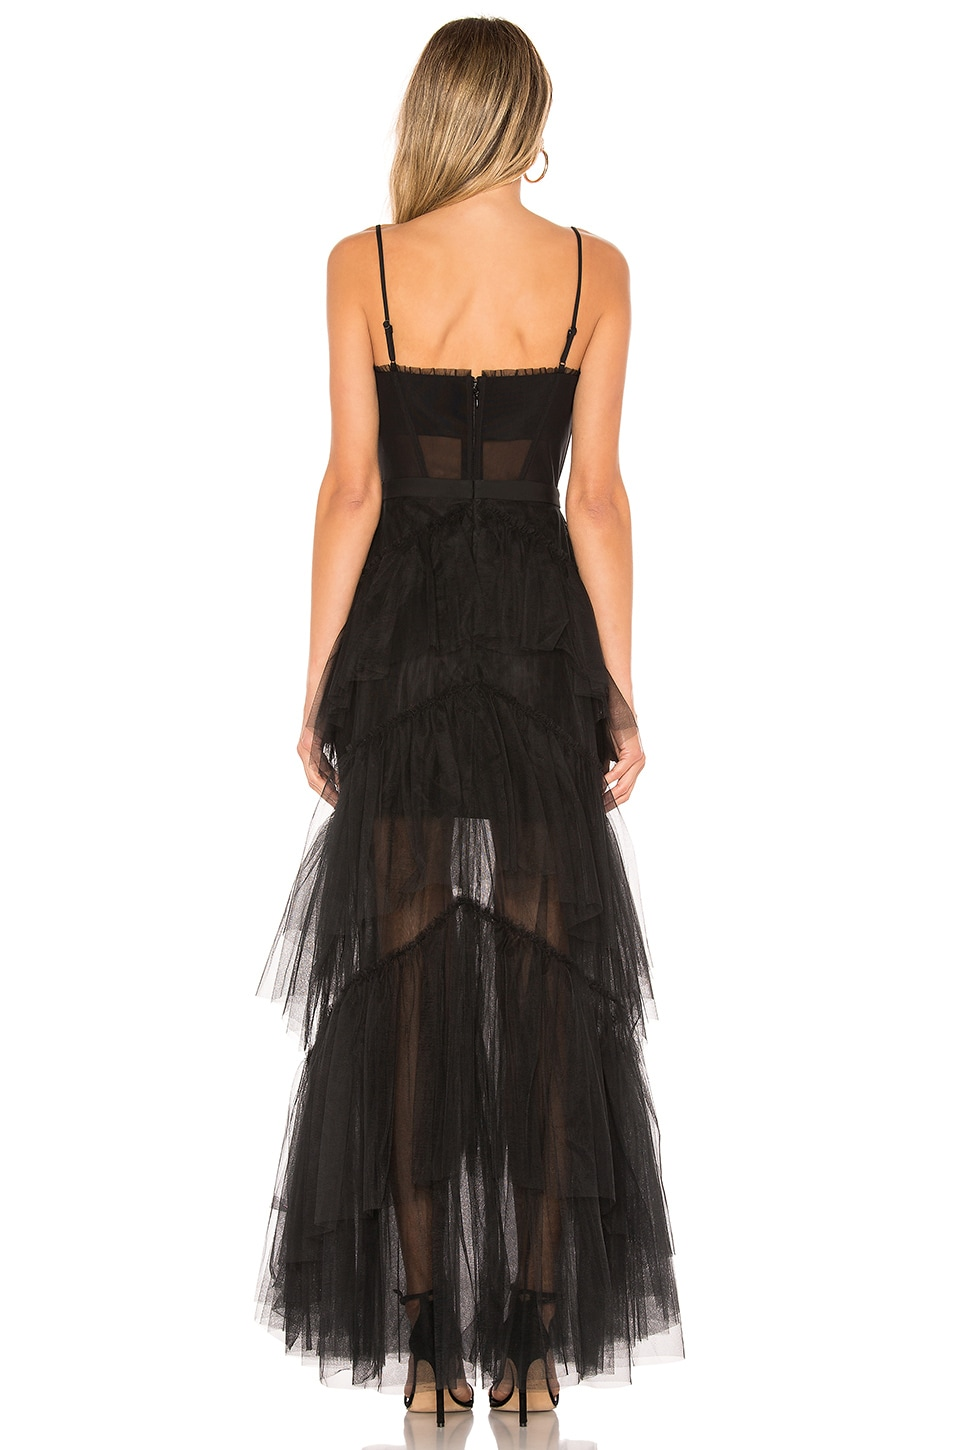 Corset Tulle Gown, view 3, click to view large image.